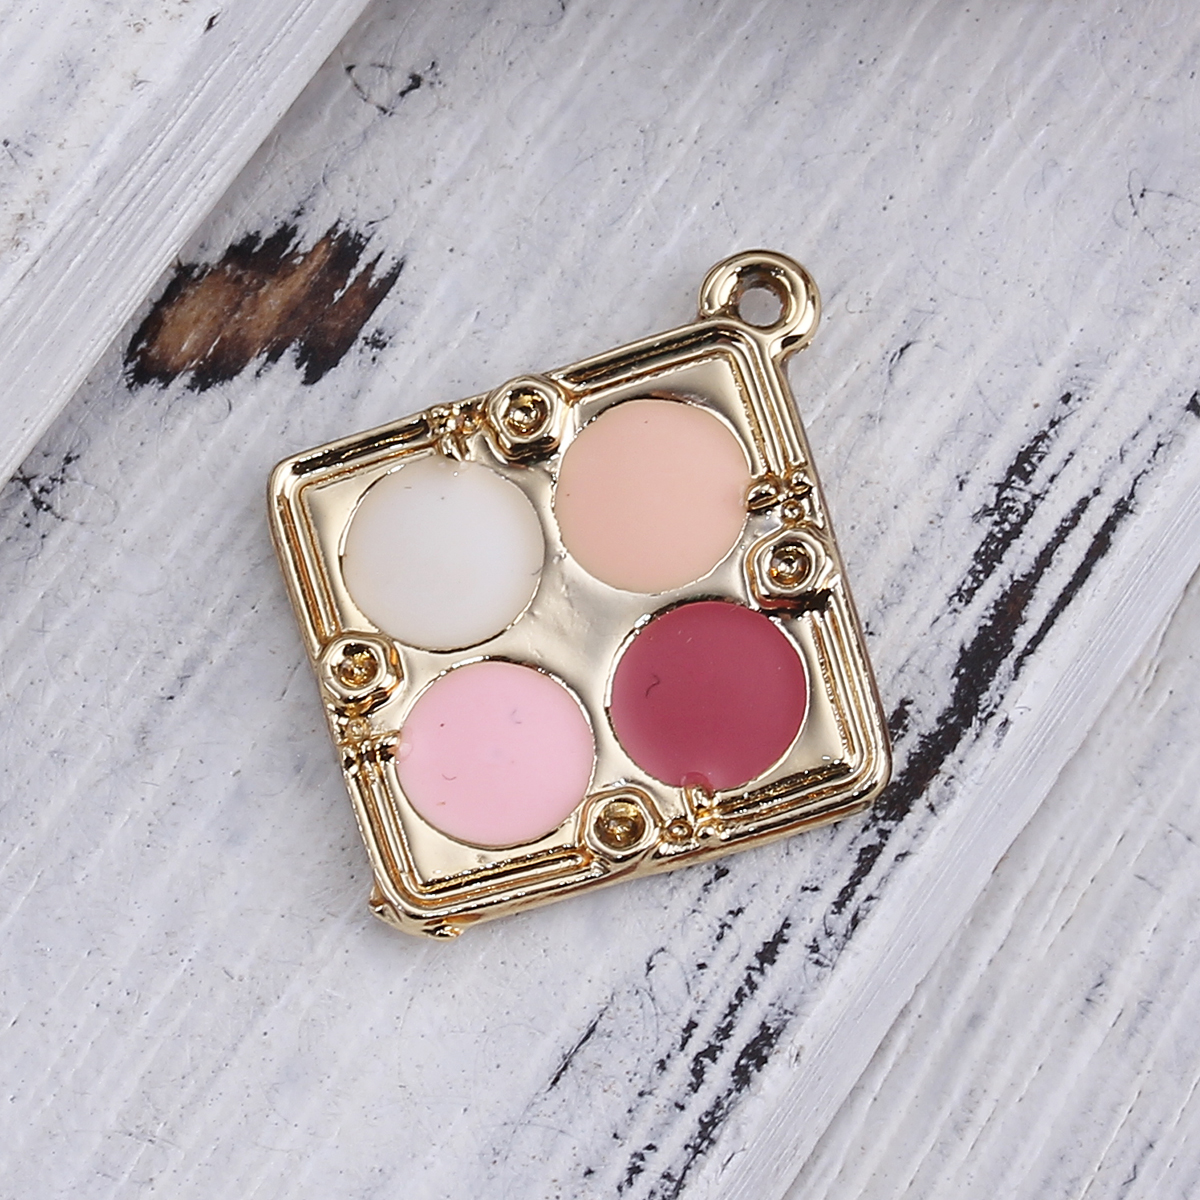 New Zinc Alloy Makeup Charms Pendant Rhombus Gold color Multicolor Blusher (Can Hold ss5 Pointed Back Rhinestone) Enamel, 10 PCs